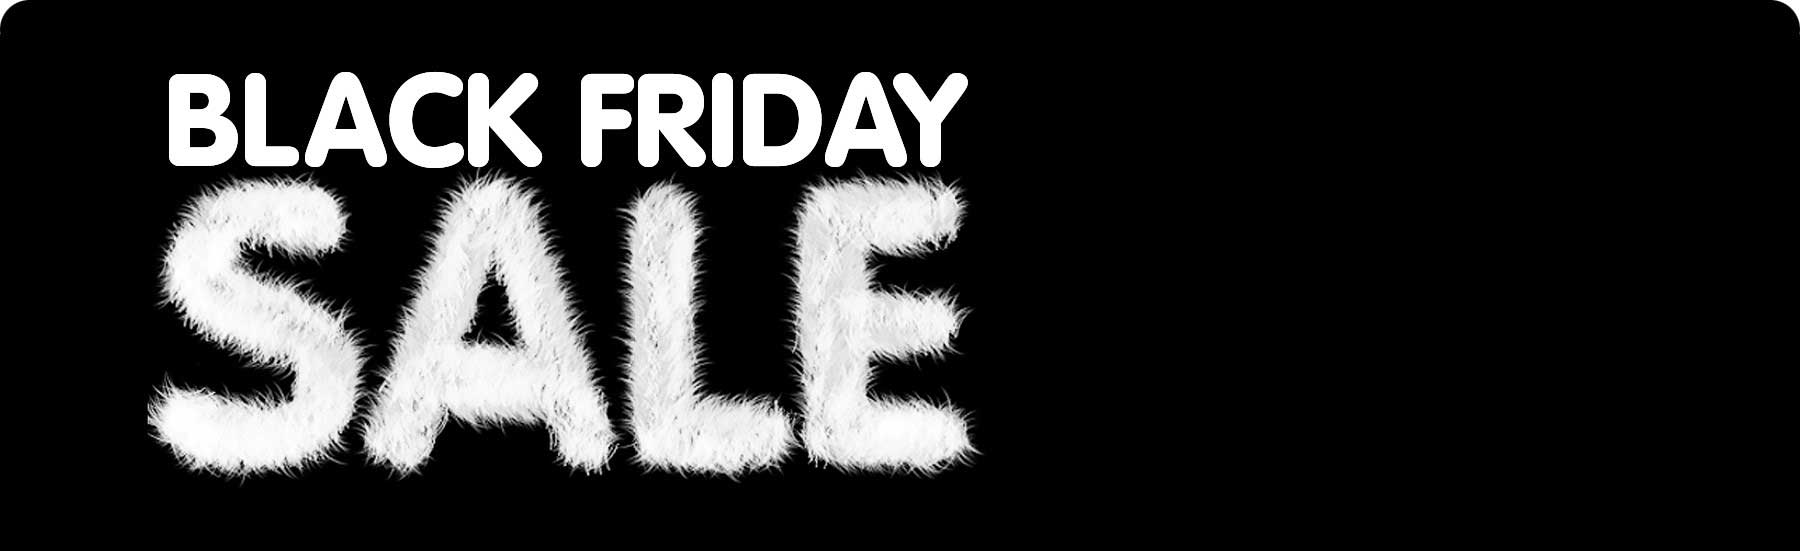 Black Friday Sale - Up to 50% On Over 500+ Products!